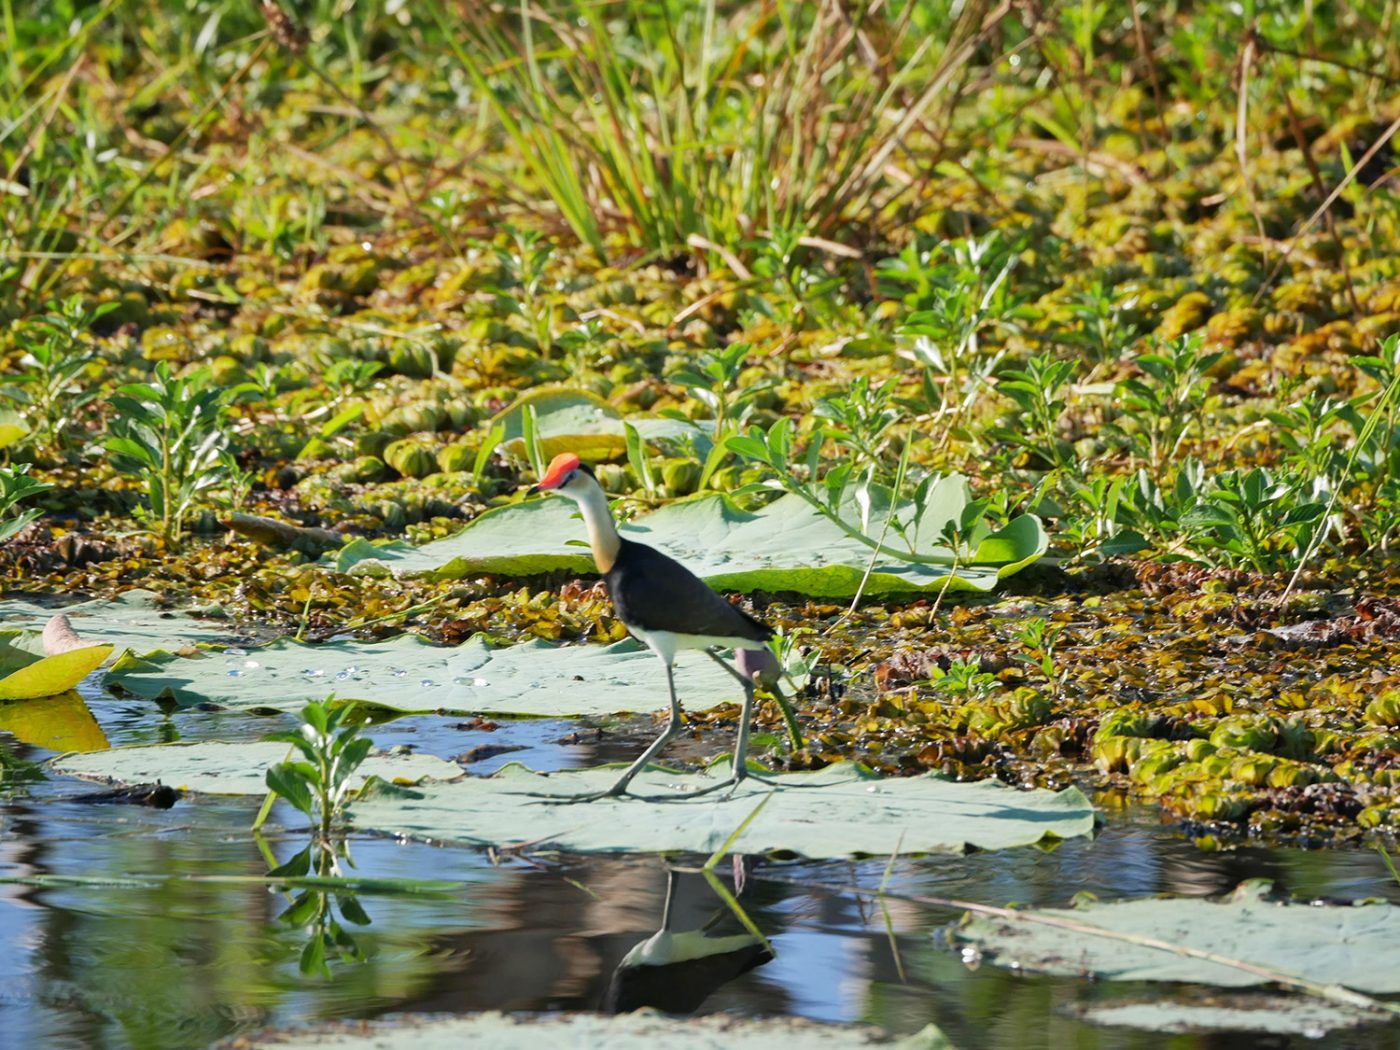 The Jacana Bird